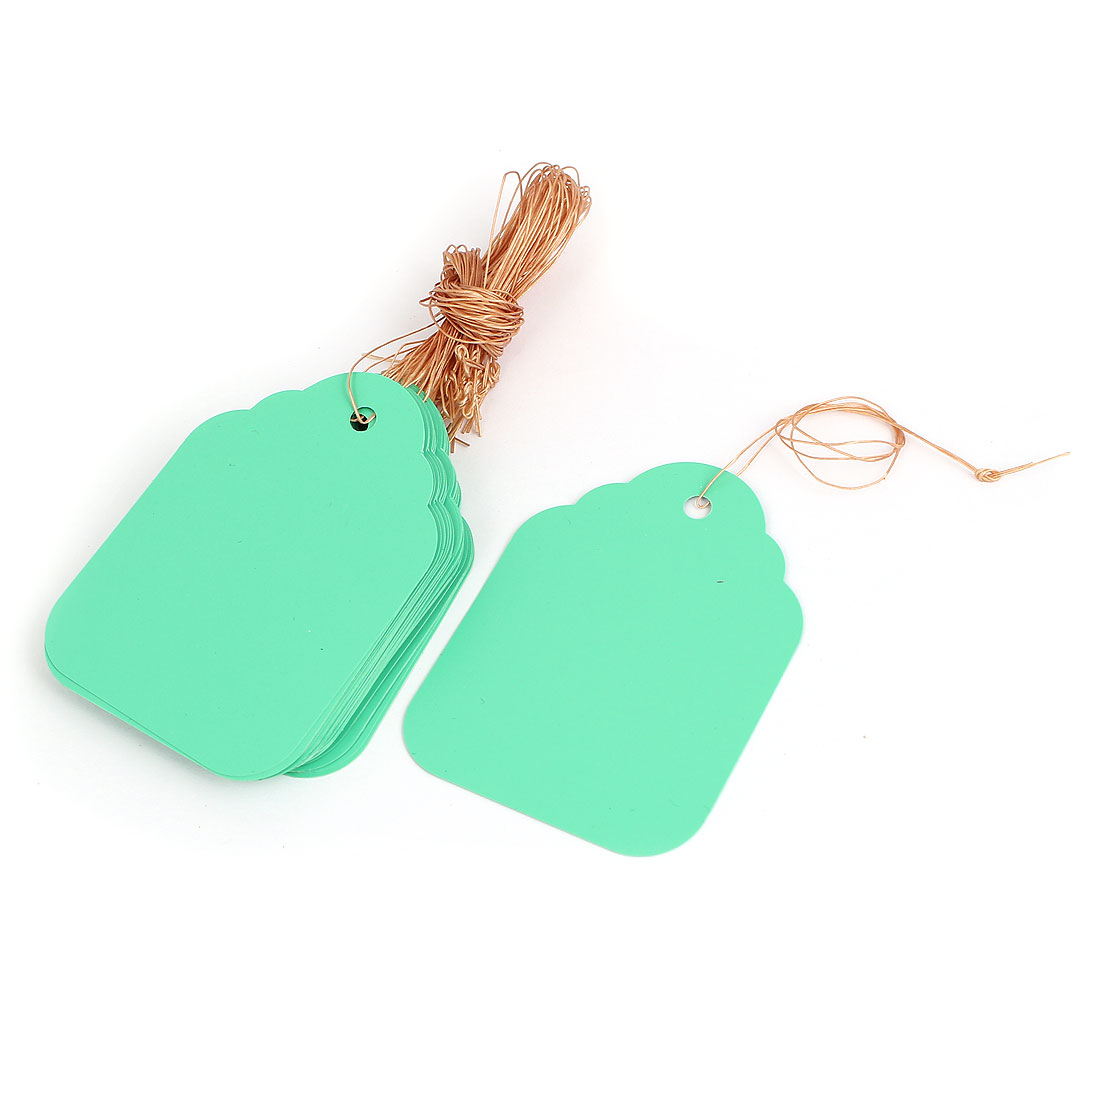 68mm x 49mm Plastic Nursery Garden Plant Seed Hanging Tag Label Marker Green 30Pcs